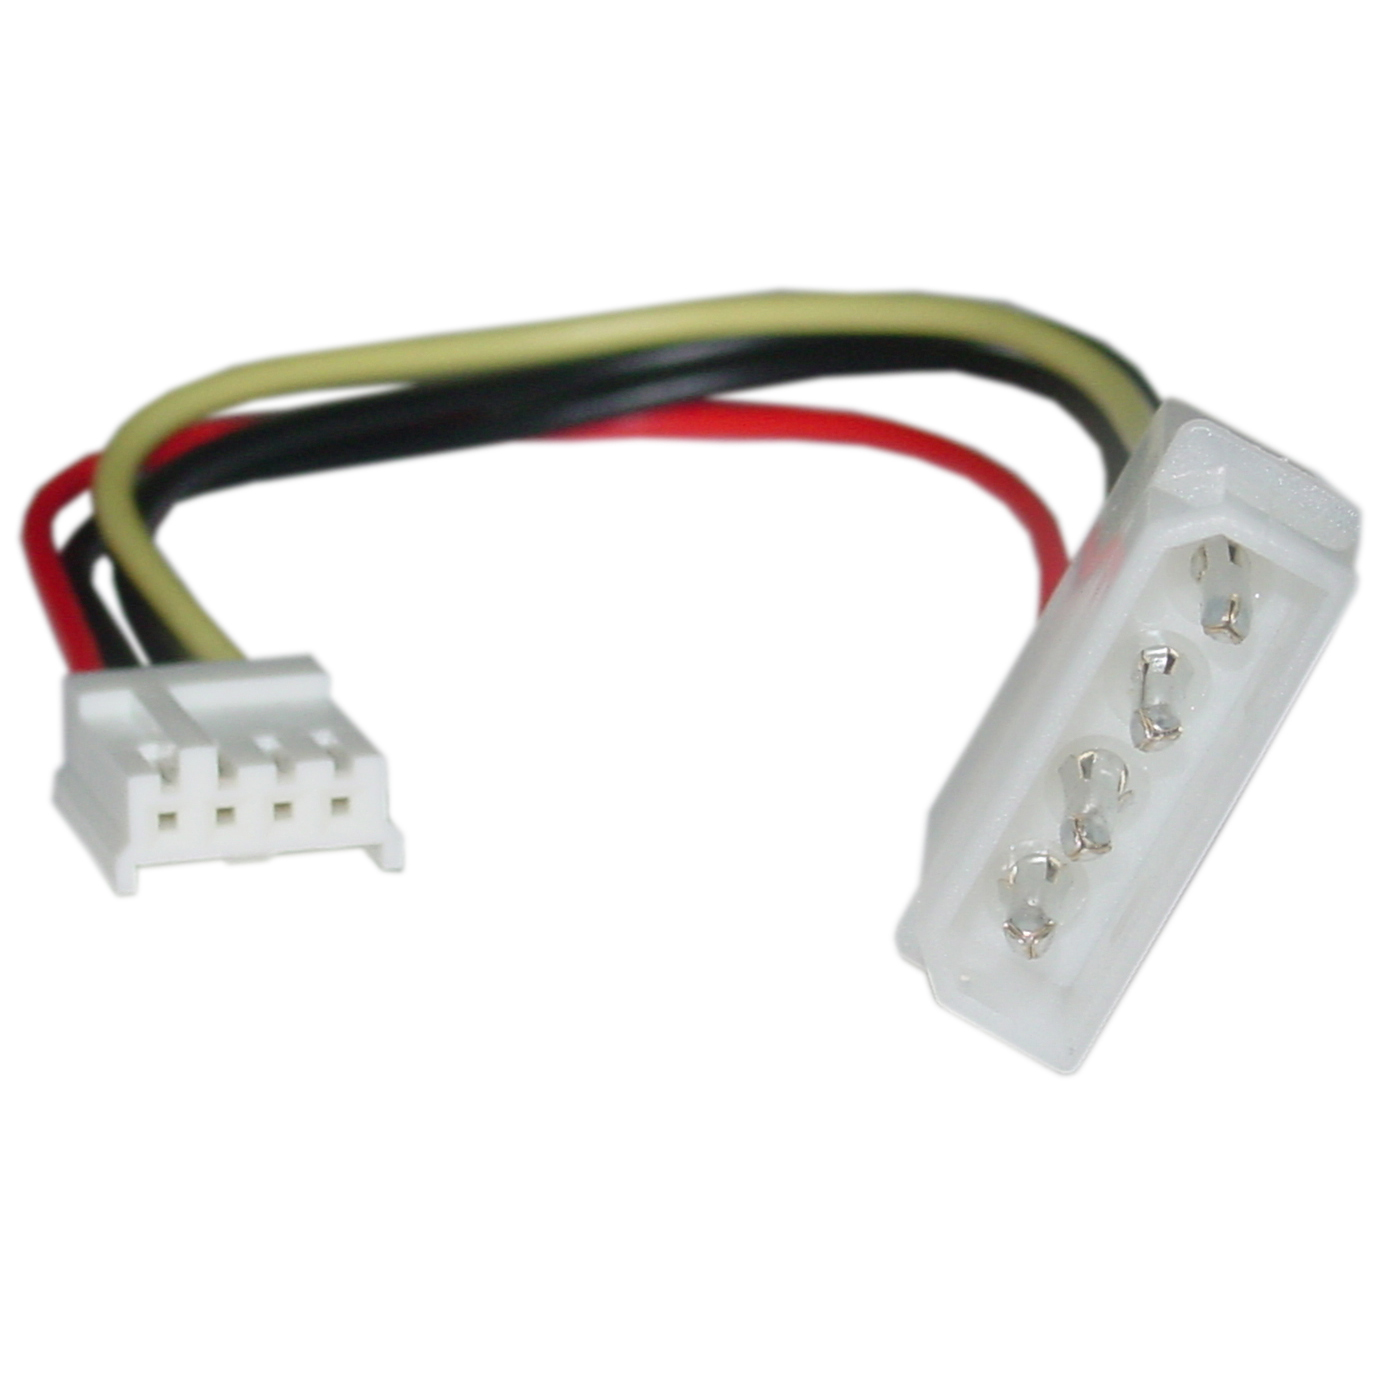 Product info additionally Audio Jack in addition Product info as well S Pdif additionally Hdmi Vs Displayport. on digital audio cable connectors